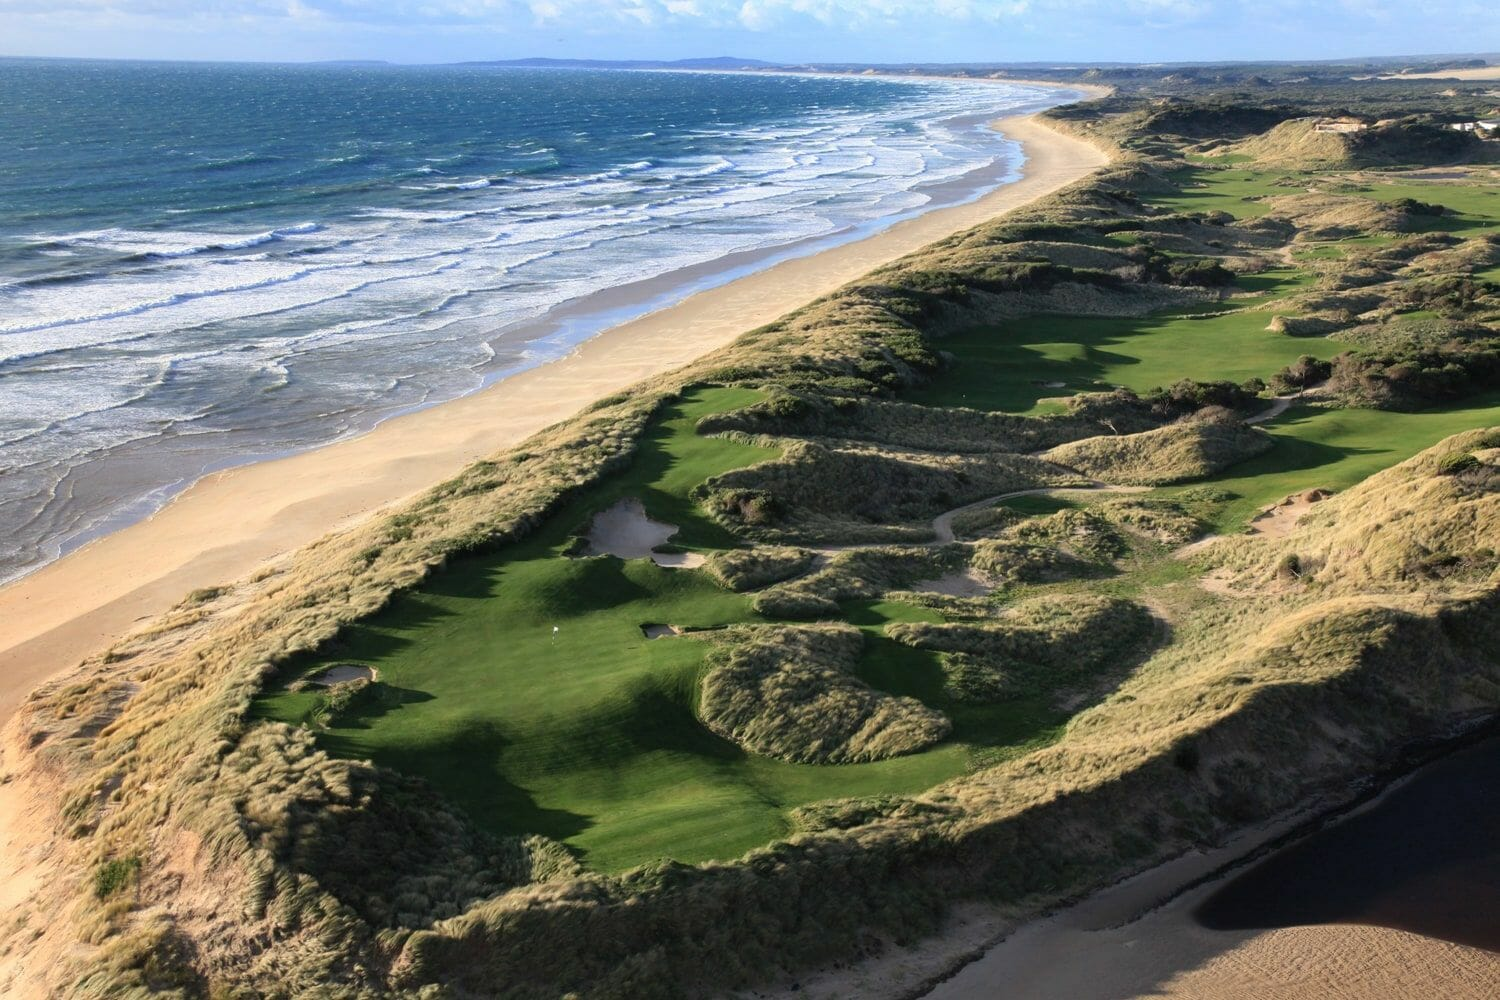 Lost farm golf course adjacent to Barnbougle Beach